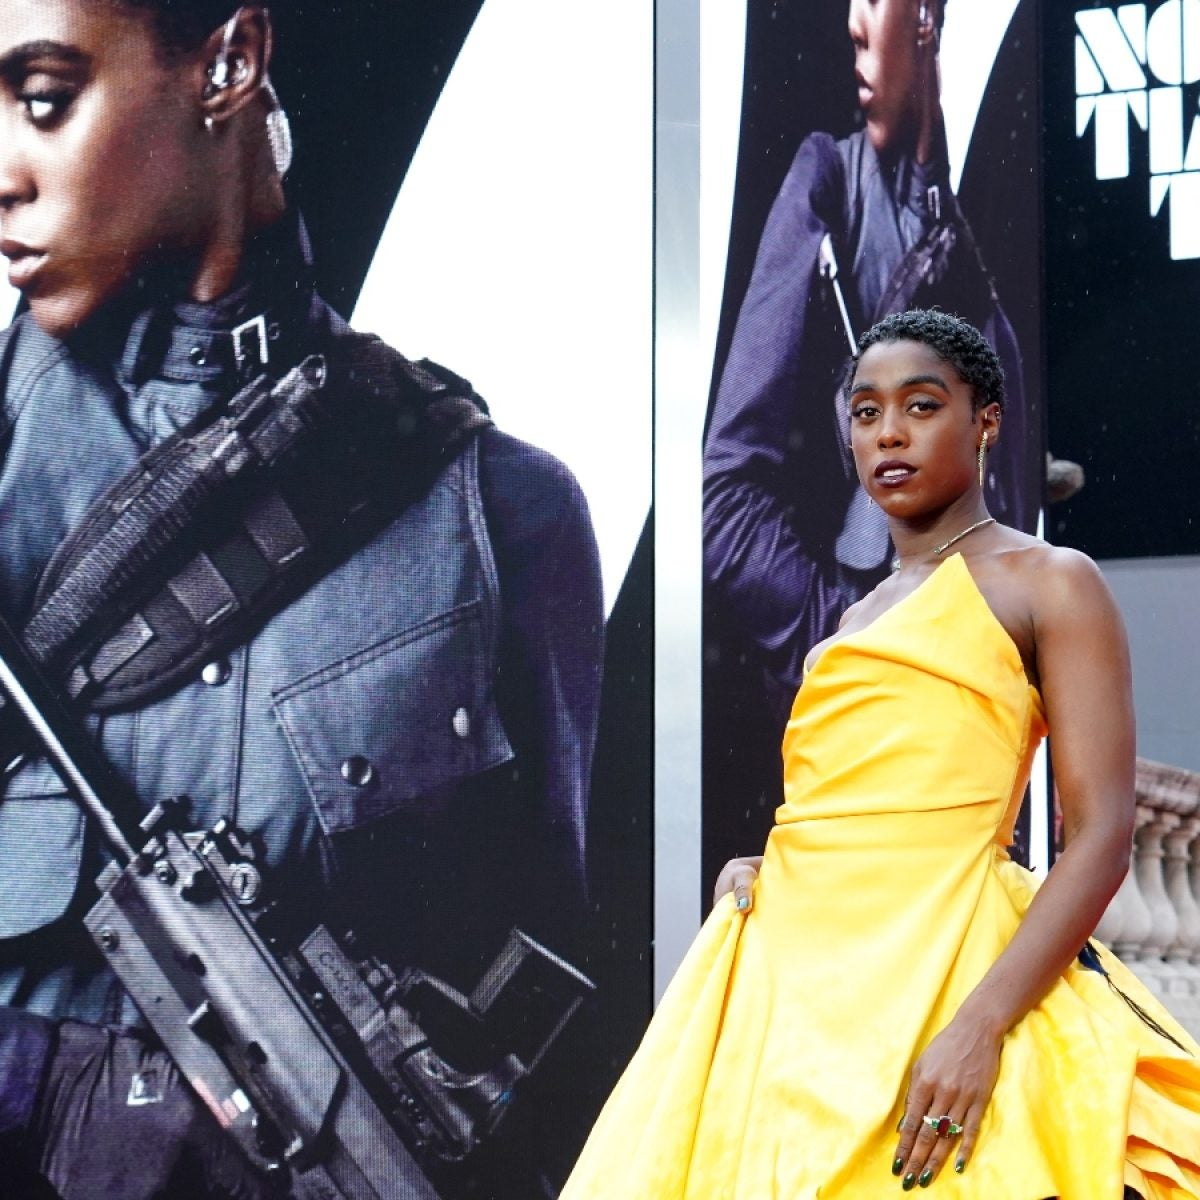 Lashana Lynch On Not Being A Stereotype In New James Bond Film 'No Time To Die'